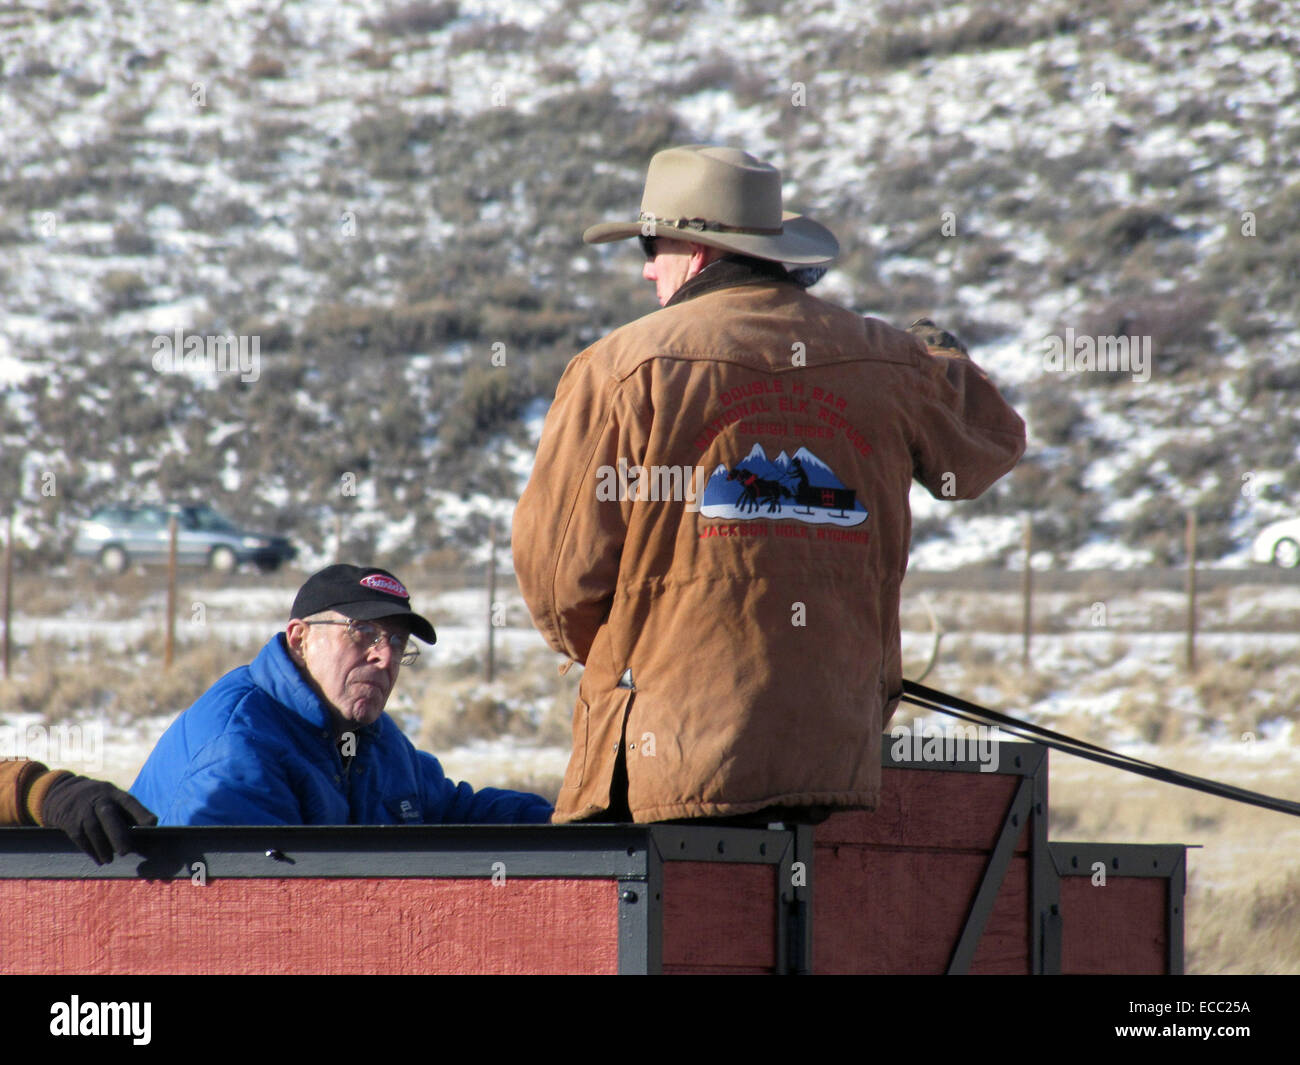 Sleigh drivers offer a quality educational program during the ride. The contractor's staff works closely with - Stock Image